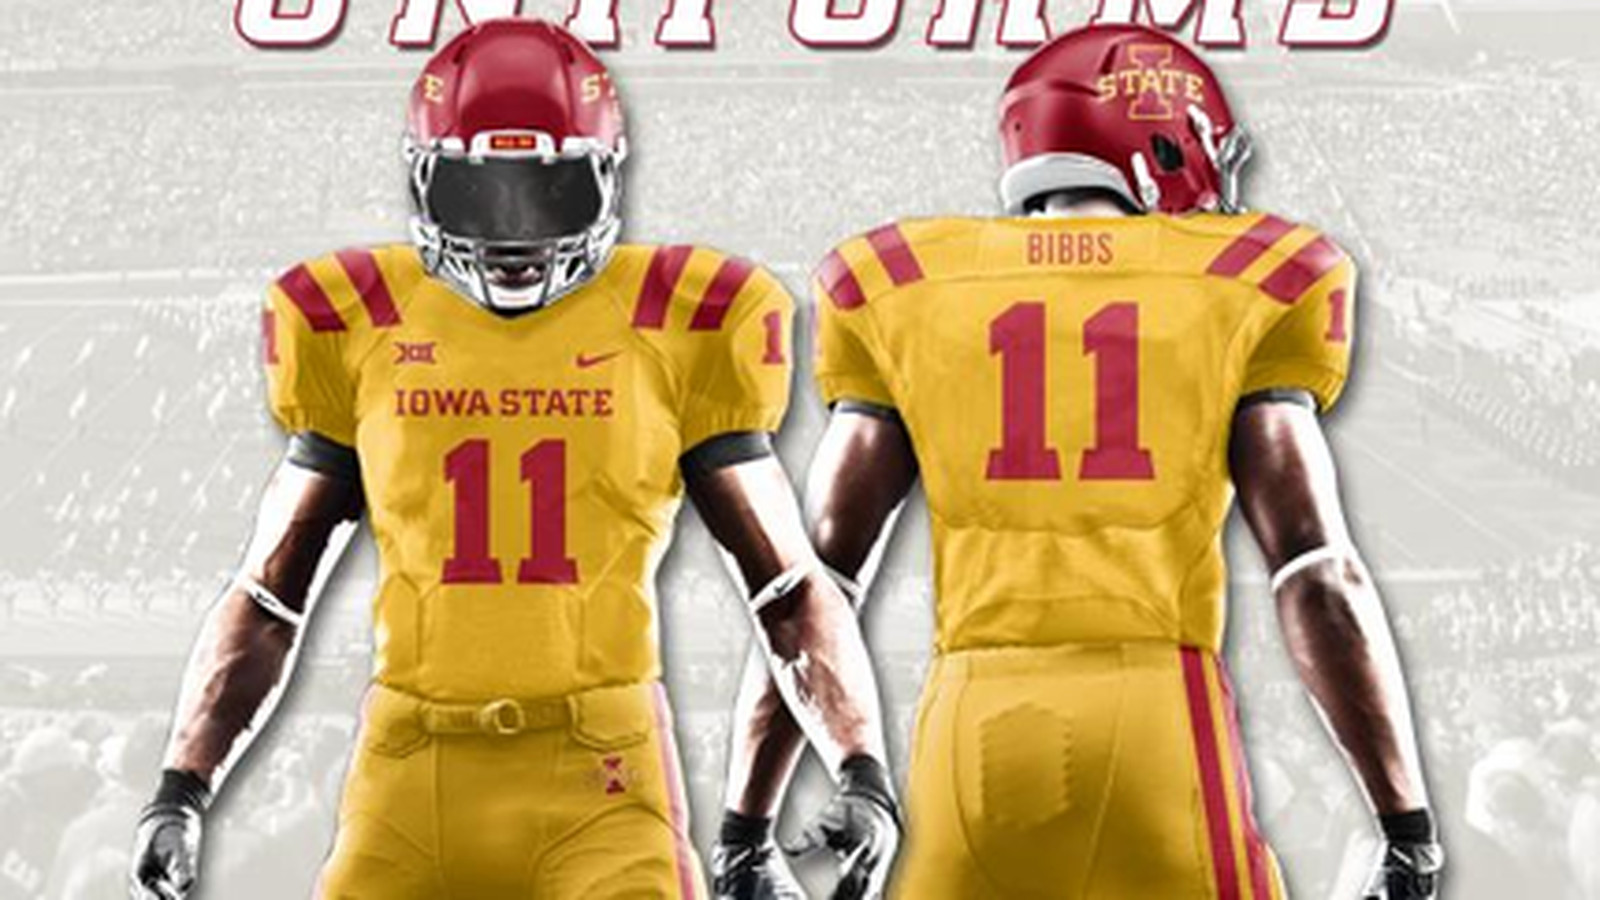 McDonalds Brings Iowa State Uniform Joke To Life